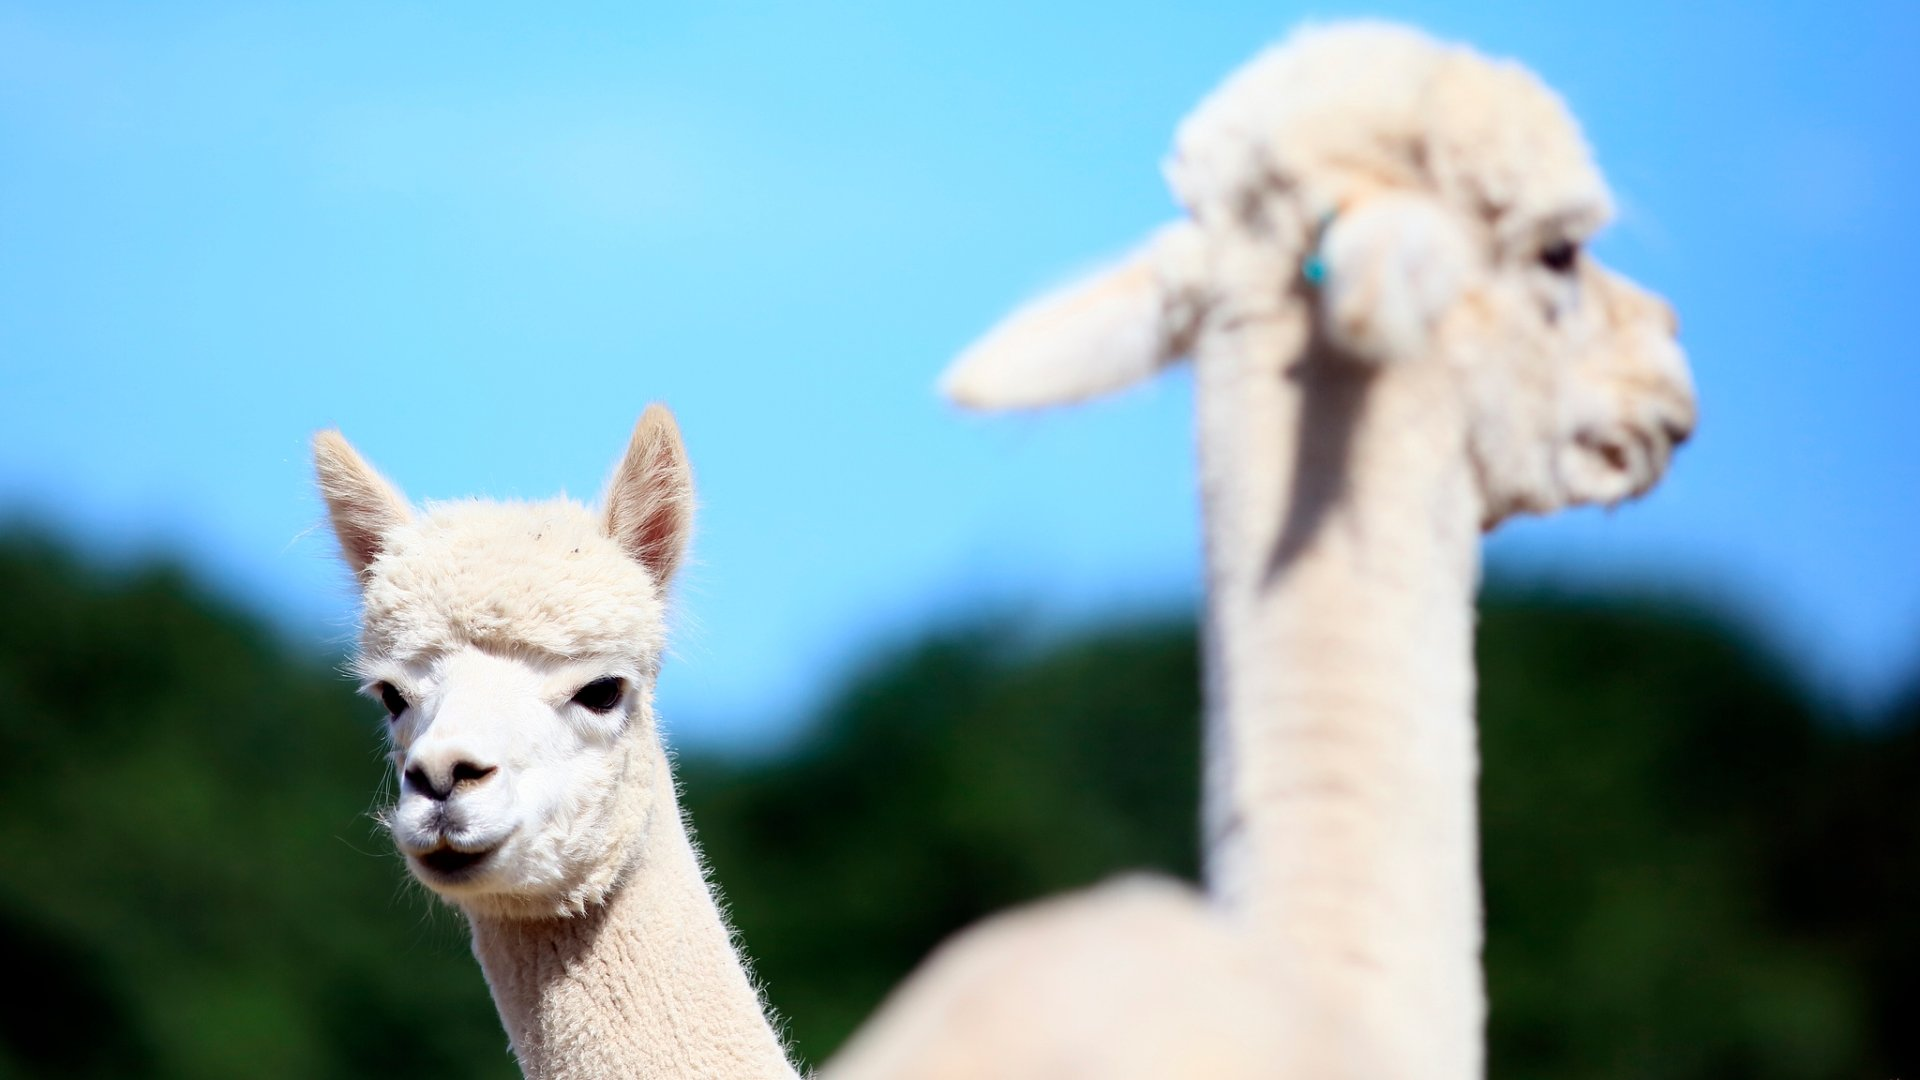 Free Alpaca high quality wallpaper ID:127007 for full hd 1920x1080 desktop